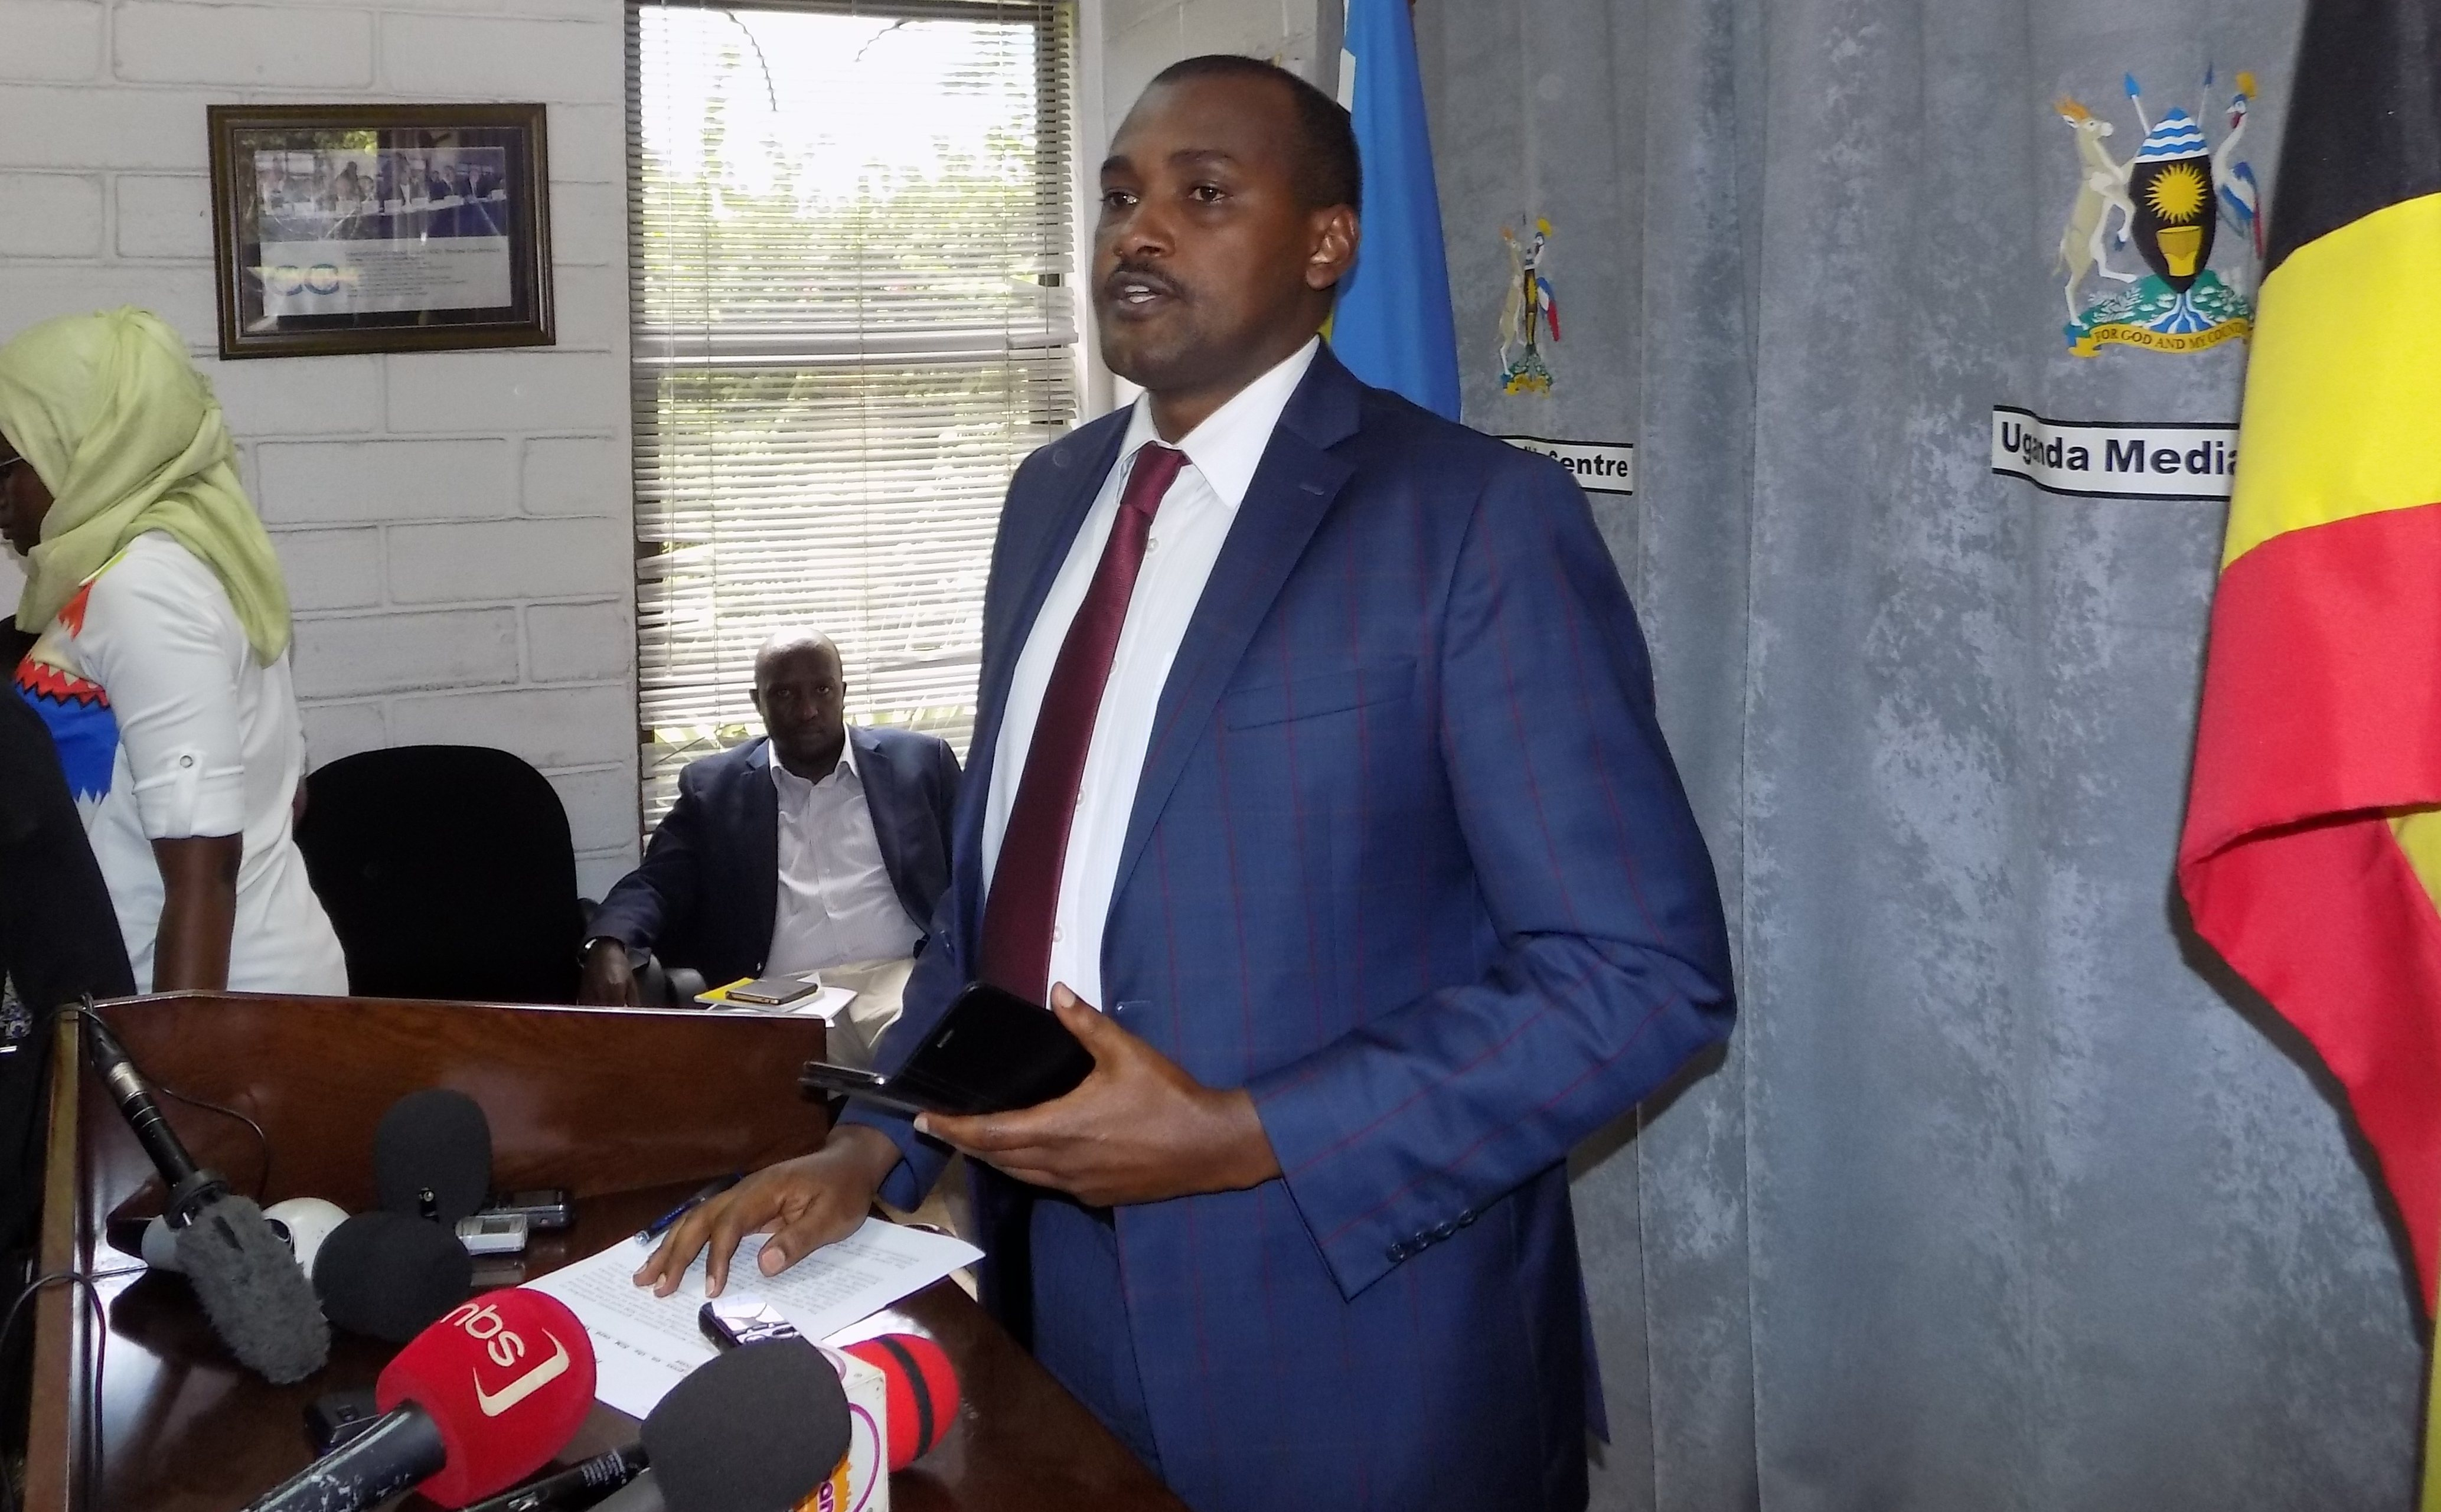 Minister of ICT, Frank Tumwebaze addresses journalists at the Uganda Media center.